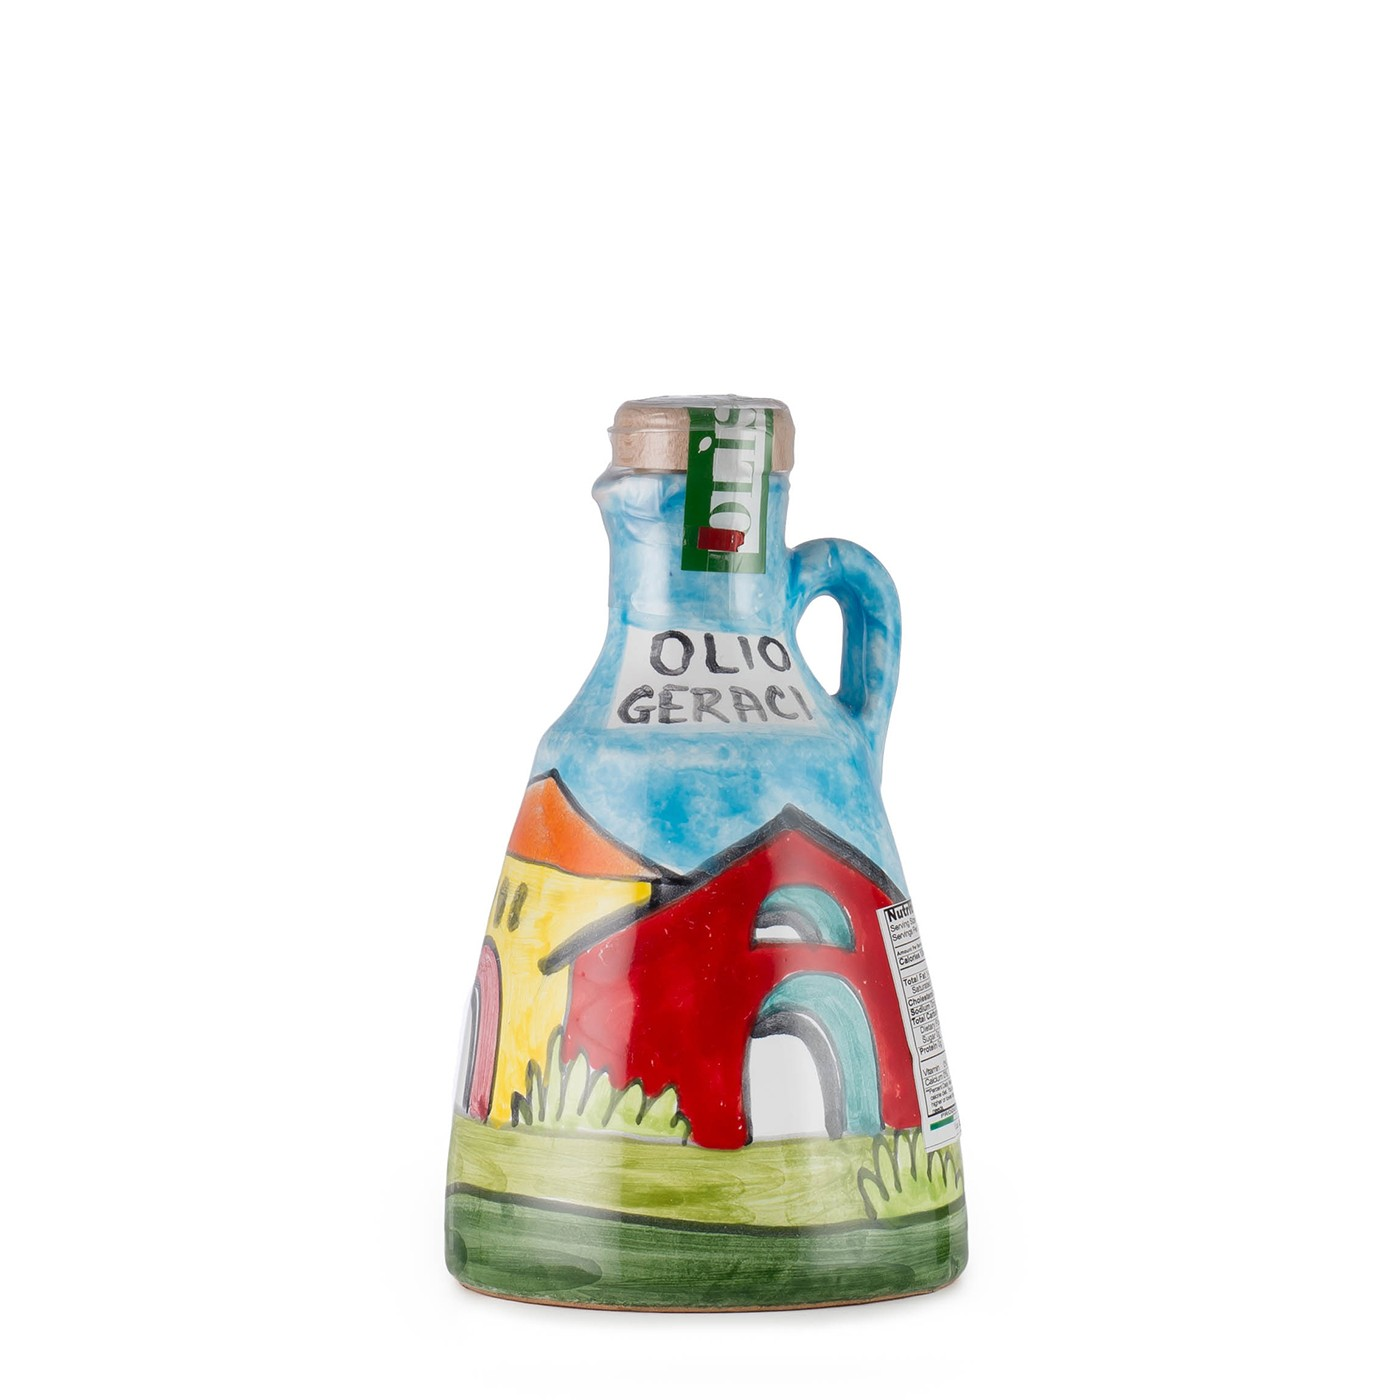 Extra Virgin Olive Oil in Ceramic Bottle 8.45 oz